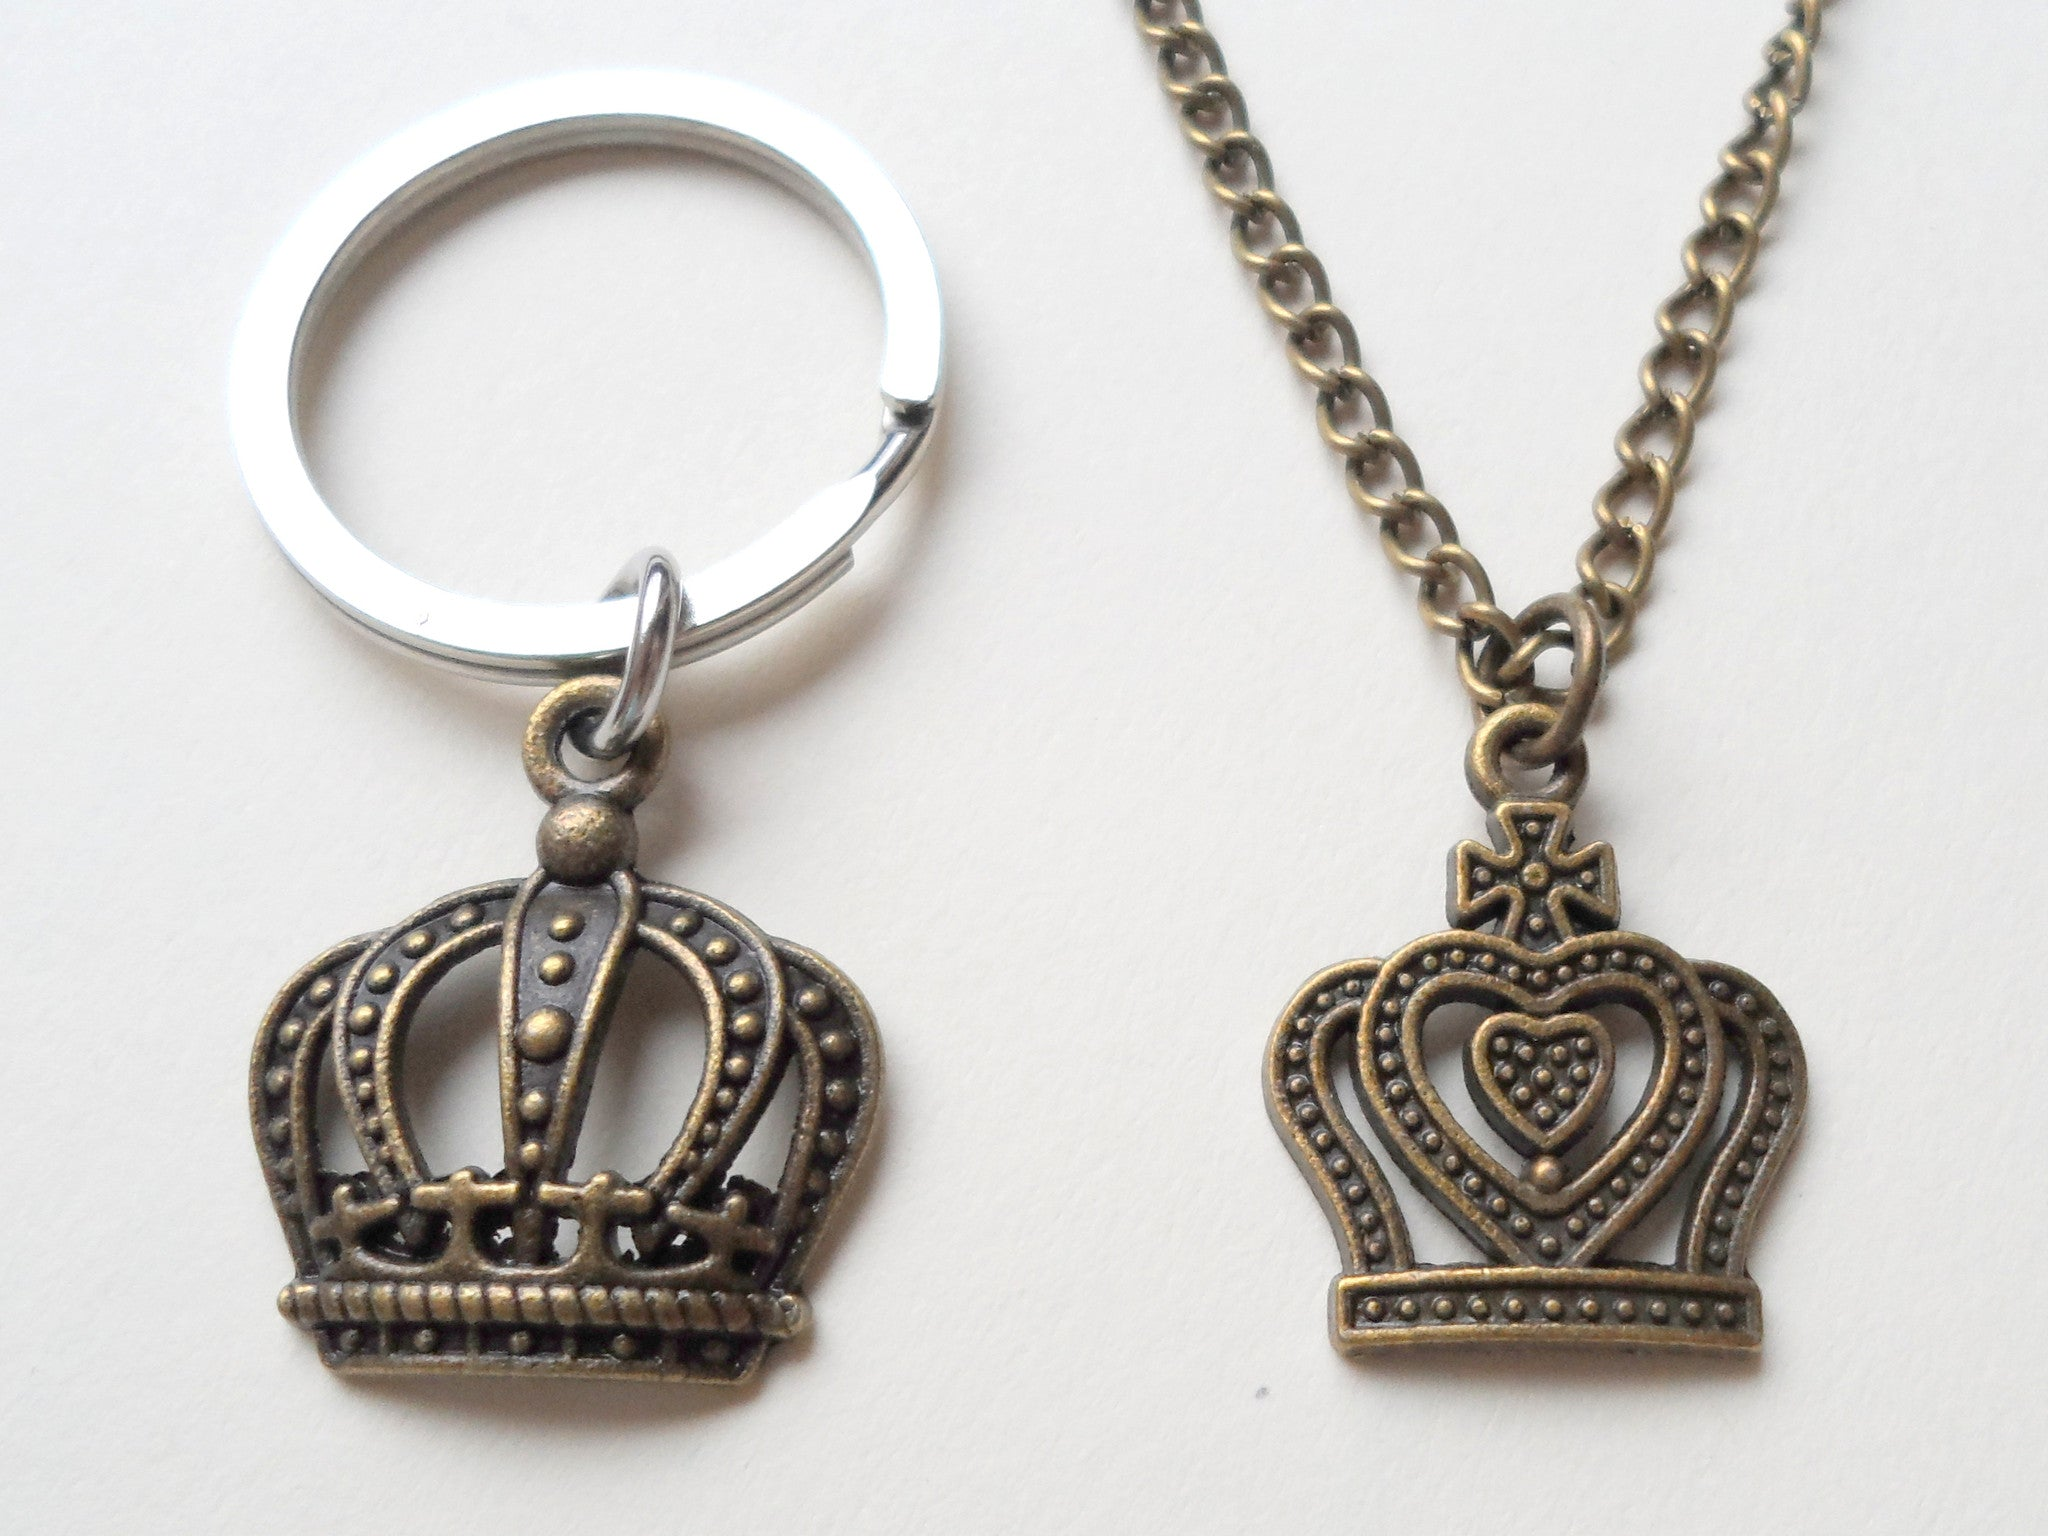 King And Queen Crown Necklace Keychain Set Jewelryeveryday